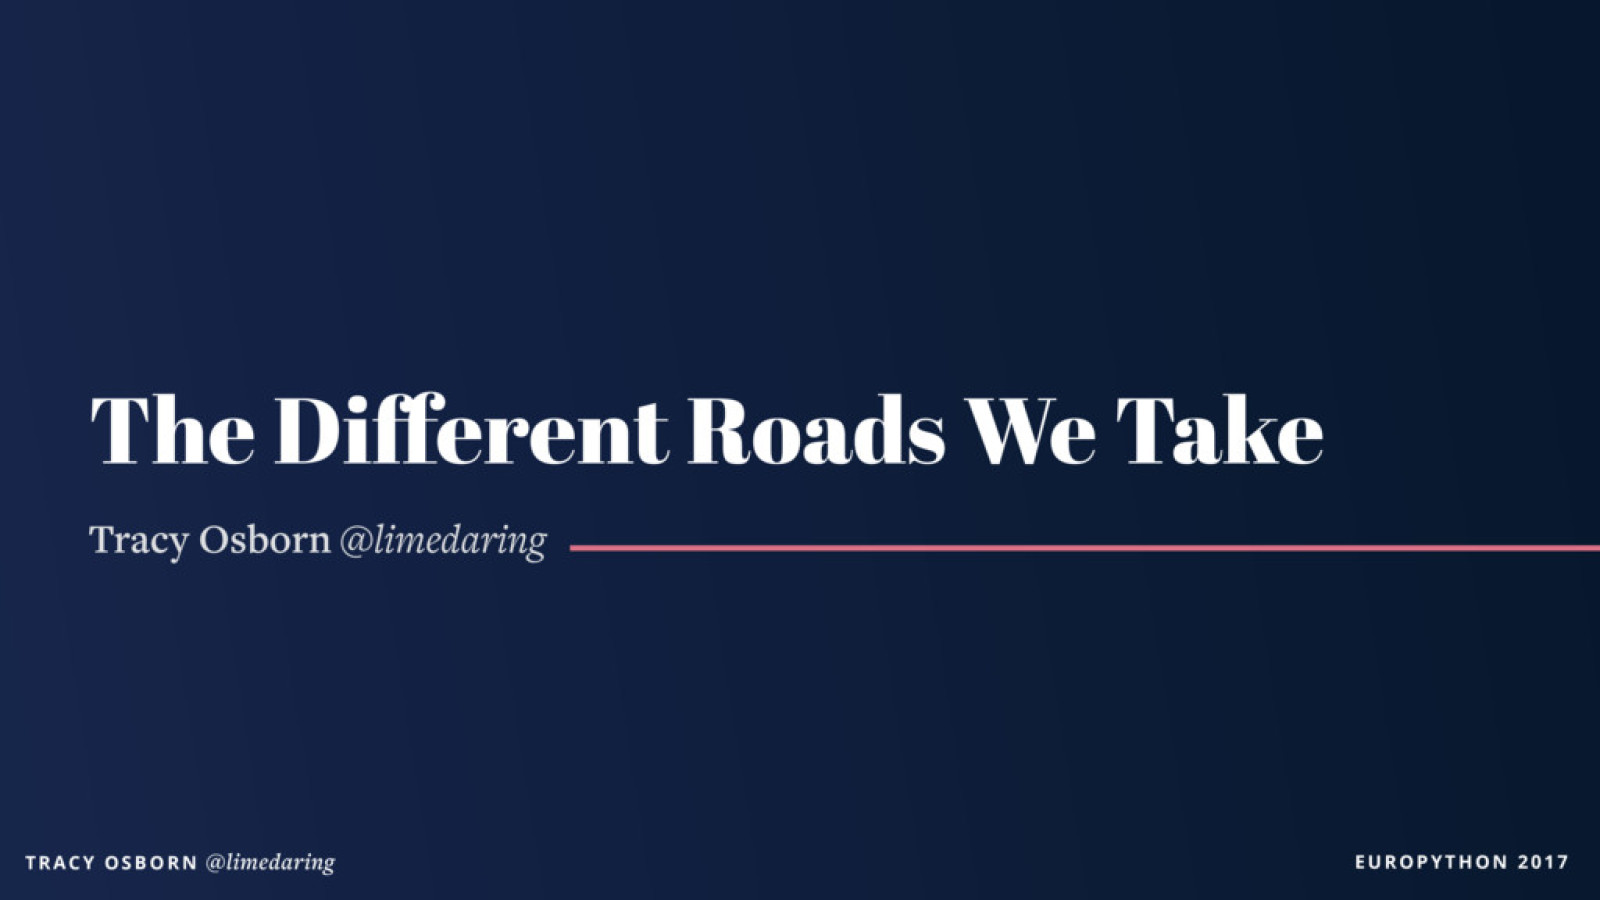 Keynote: The Different Roads We Take